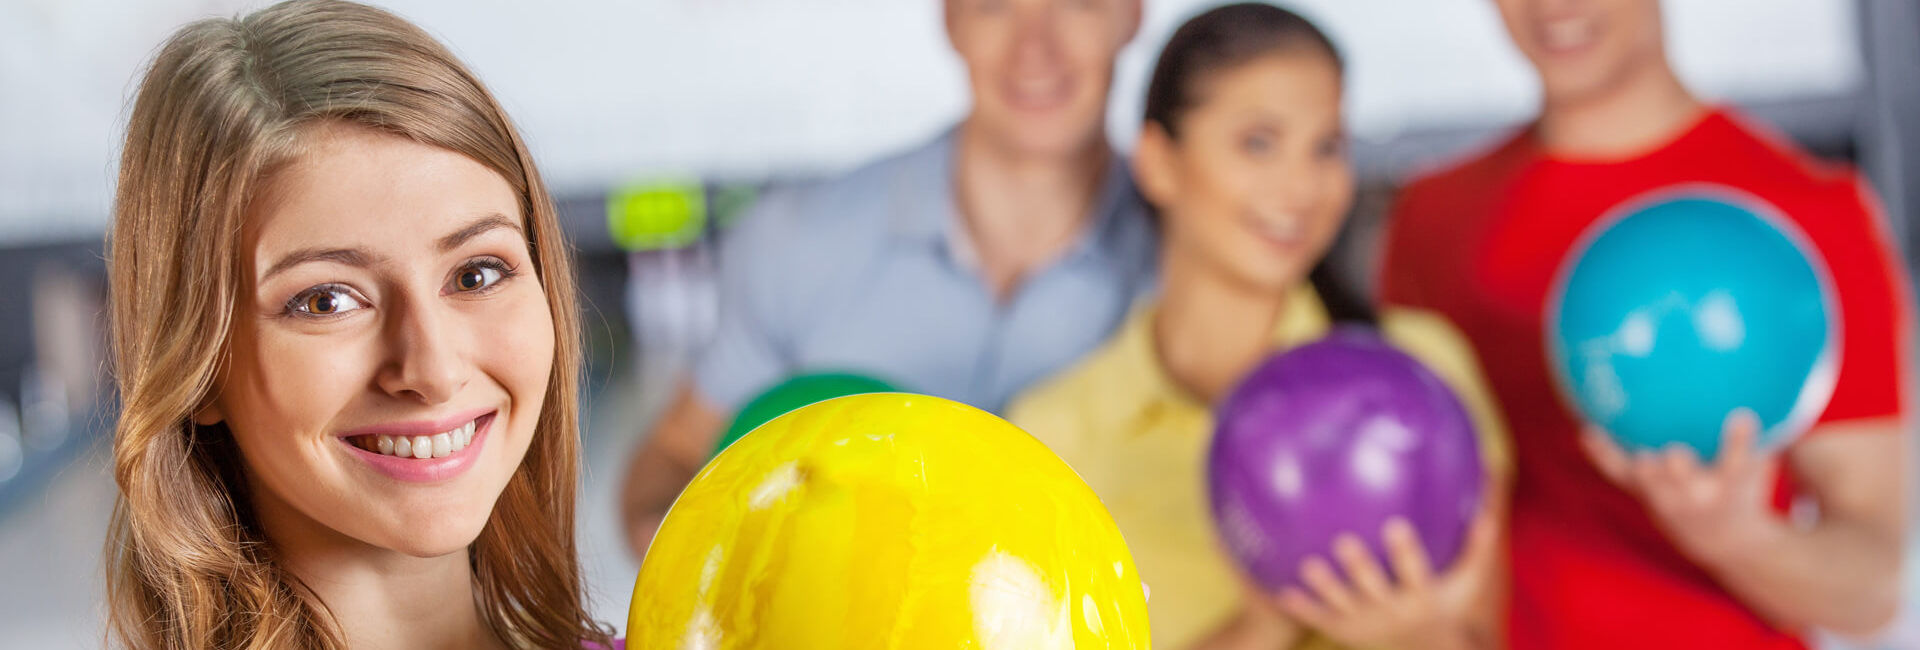 School kids holding a bowling ball